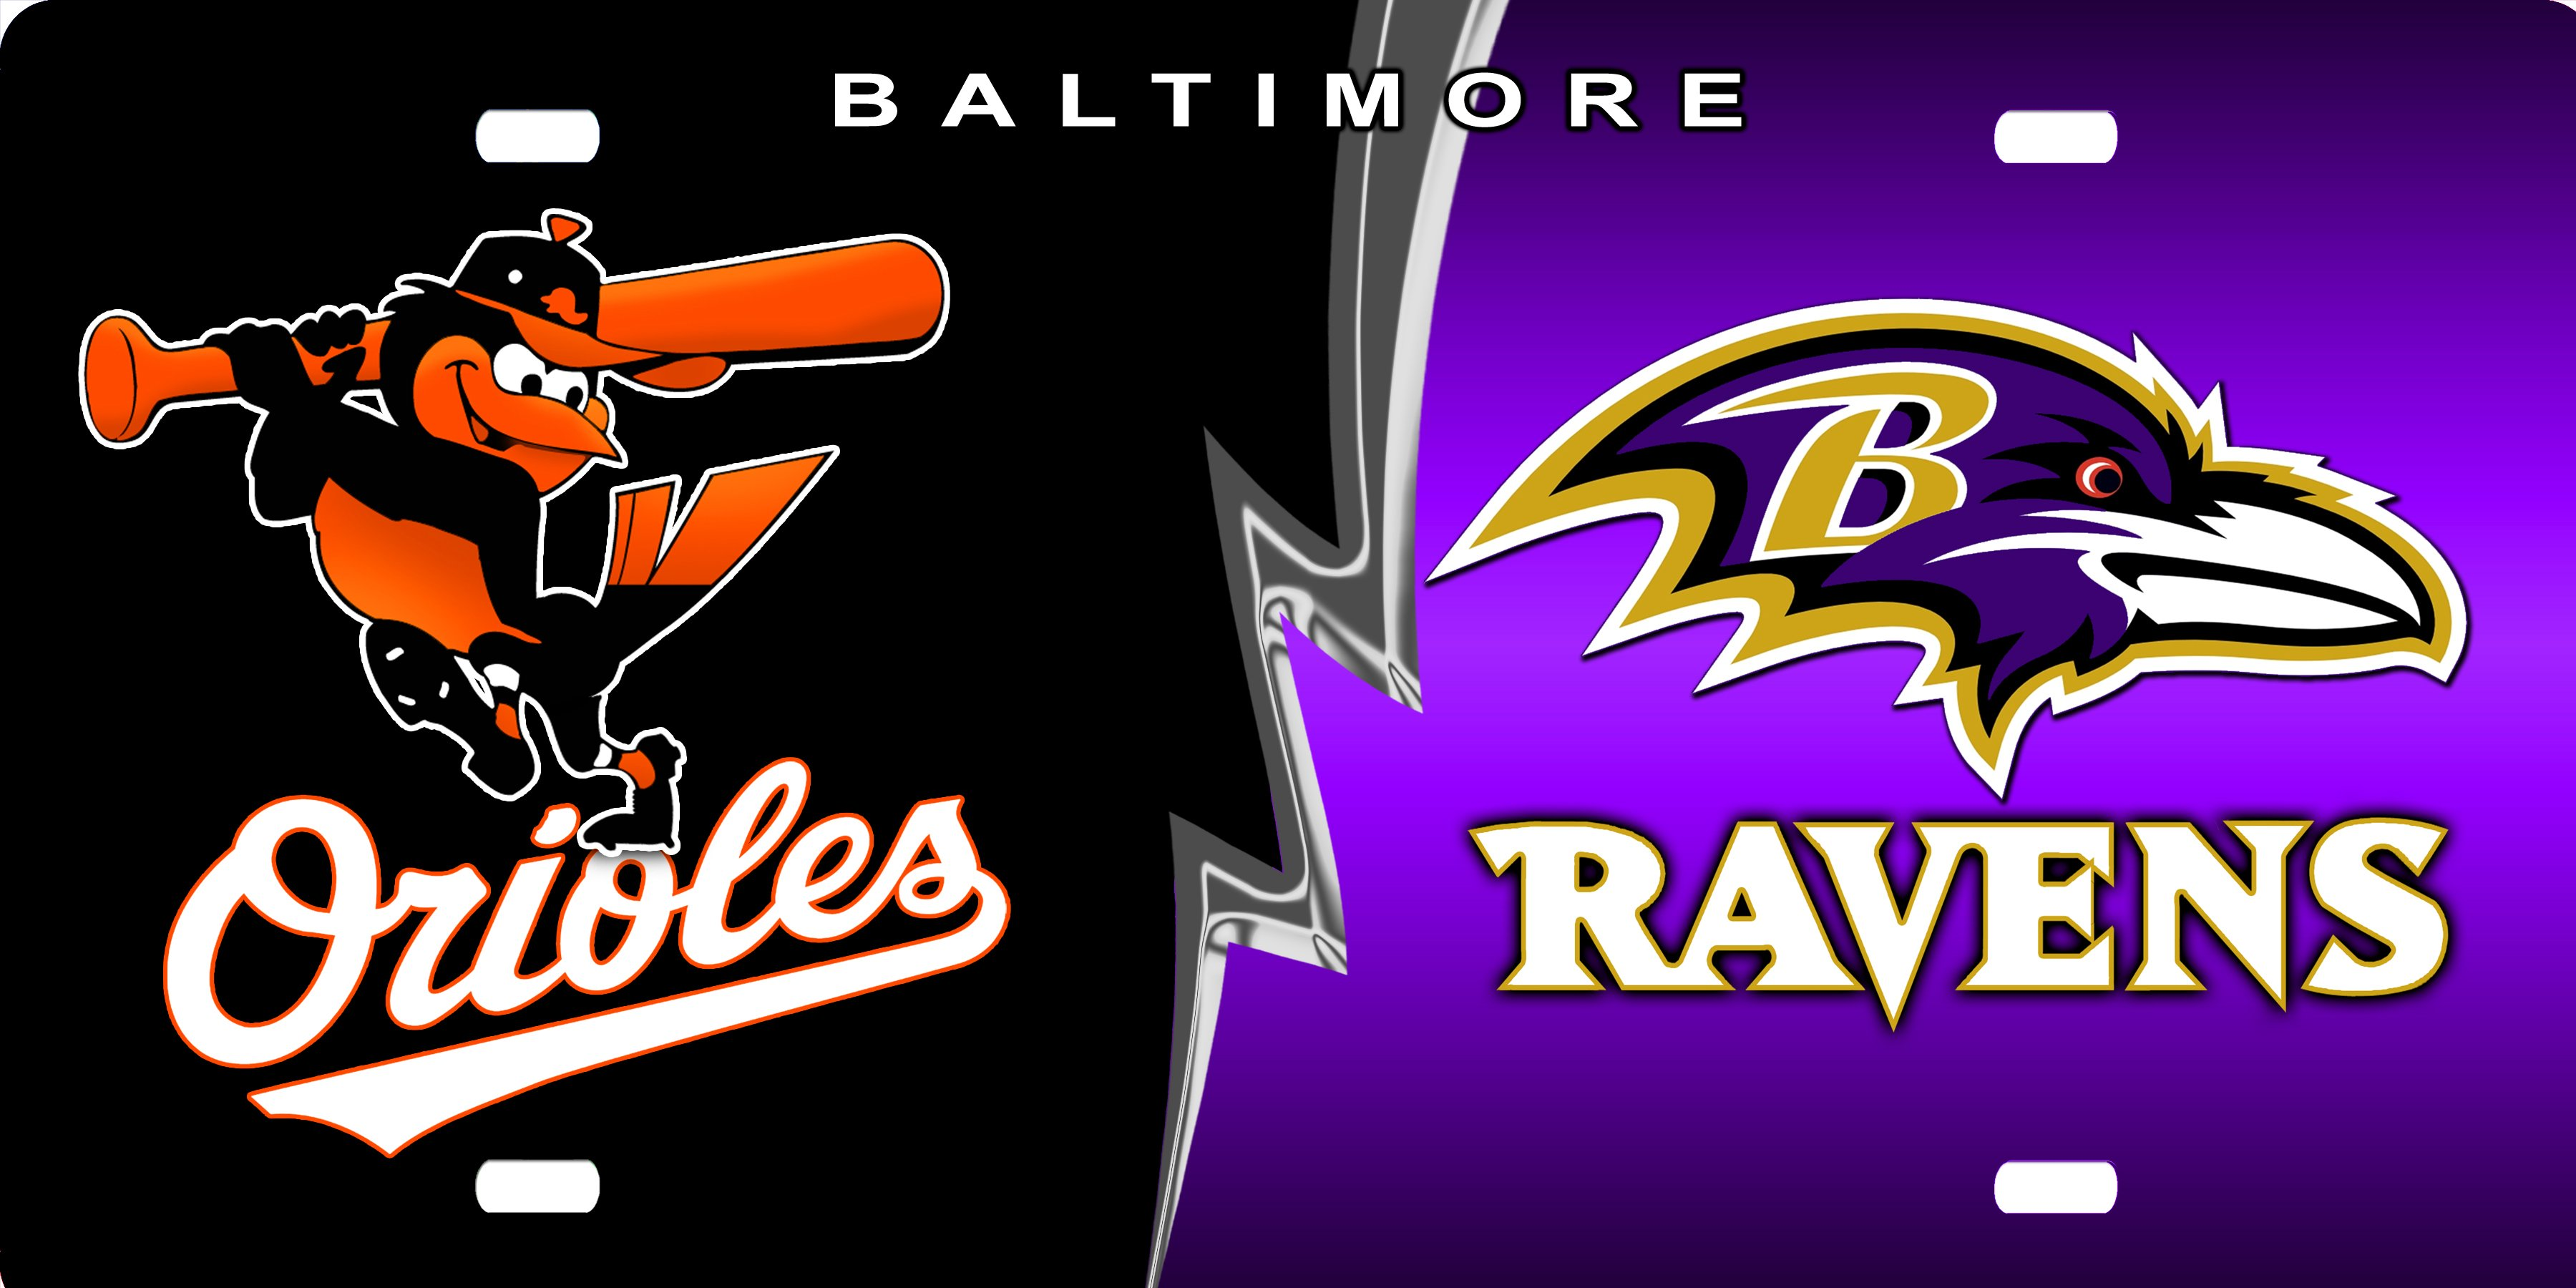 Orioles and Ravens License Plate License Plate Orioles and Ravens 3600x1800